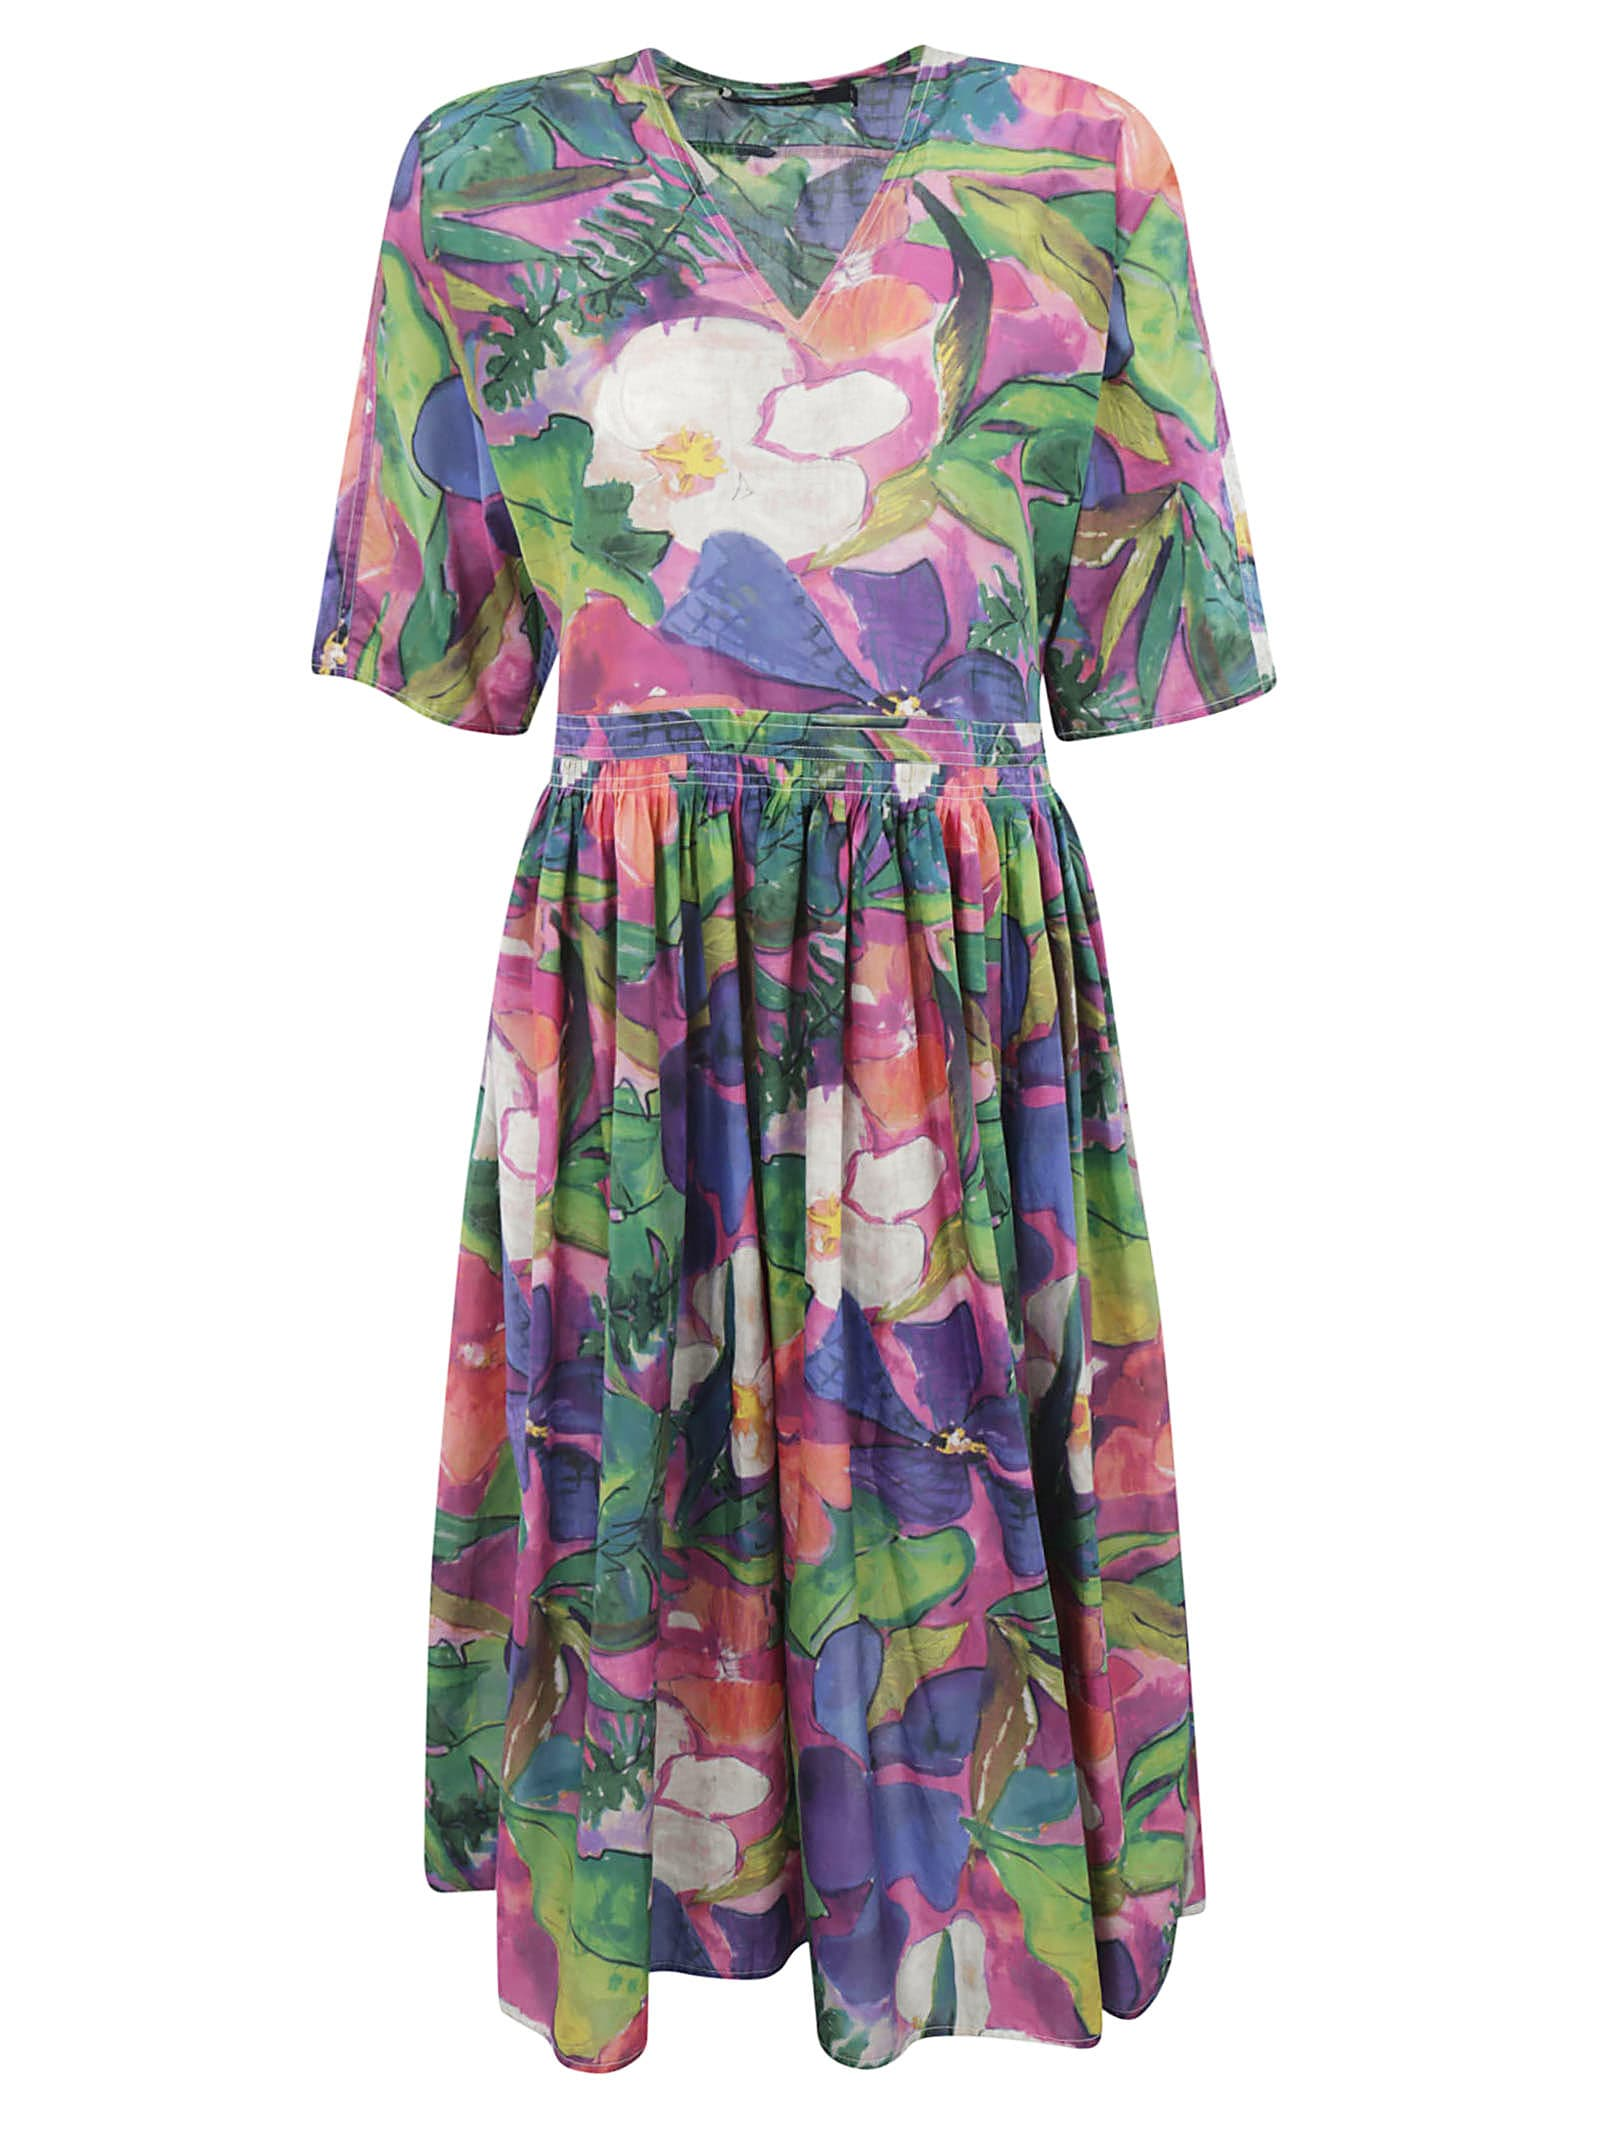 Sofie dHoore Floral Print Dress